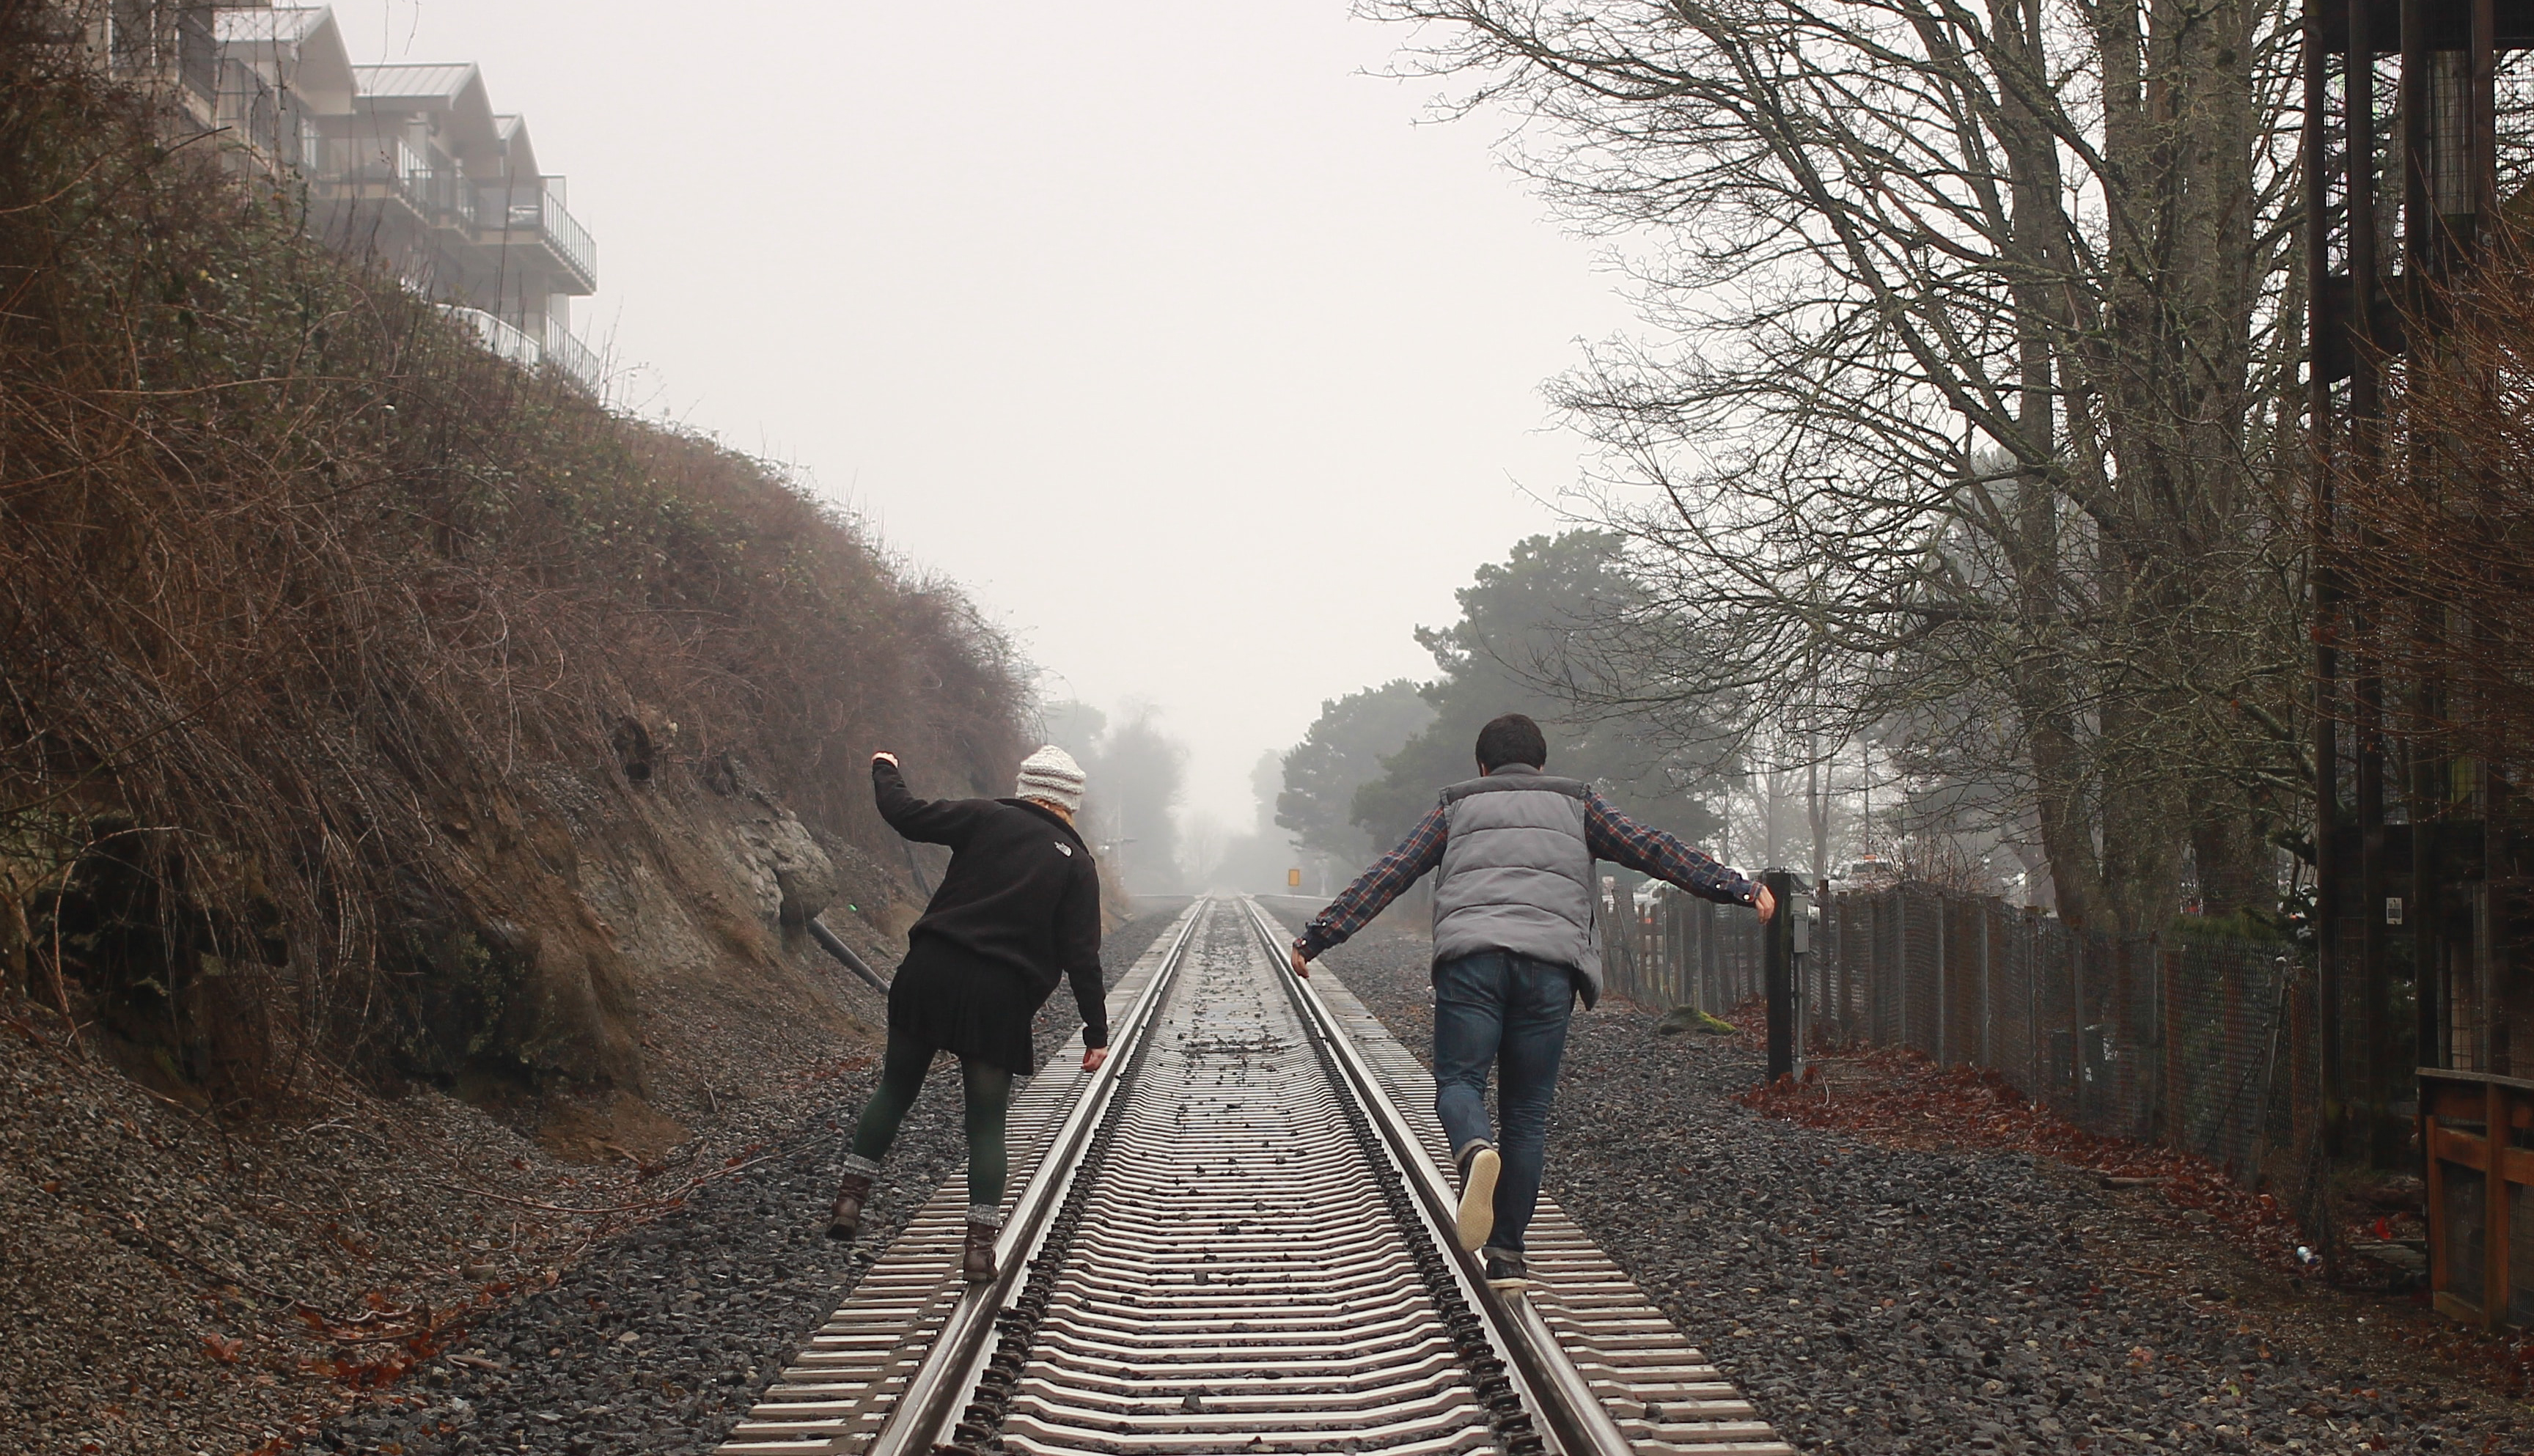 Two people photographed from the back walking on the left and right rails of traintracks in the country.